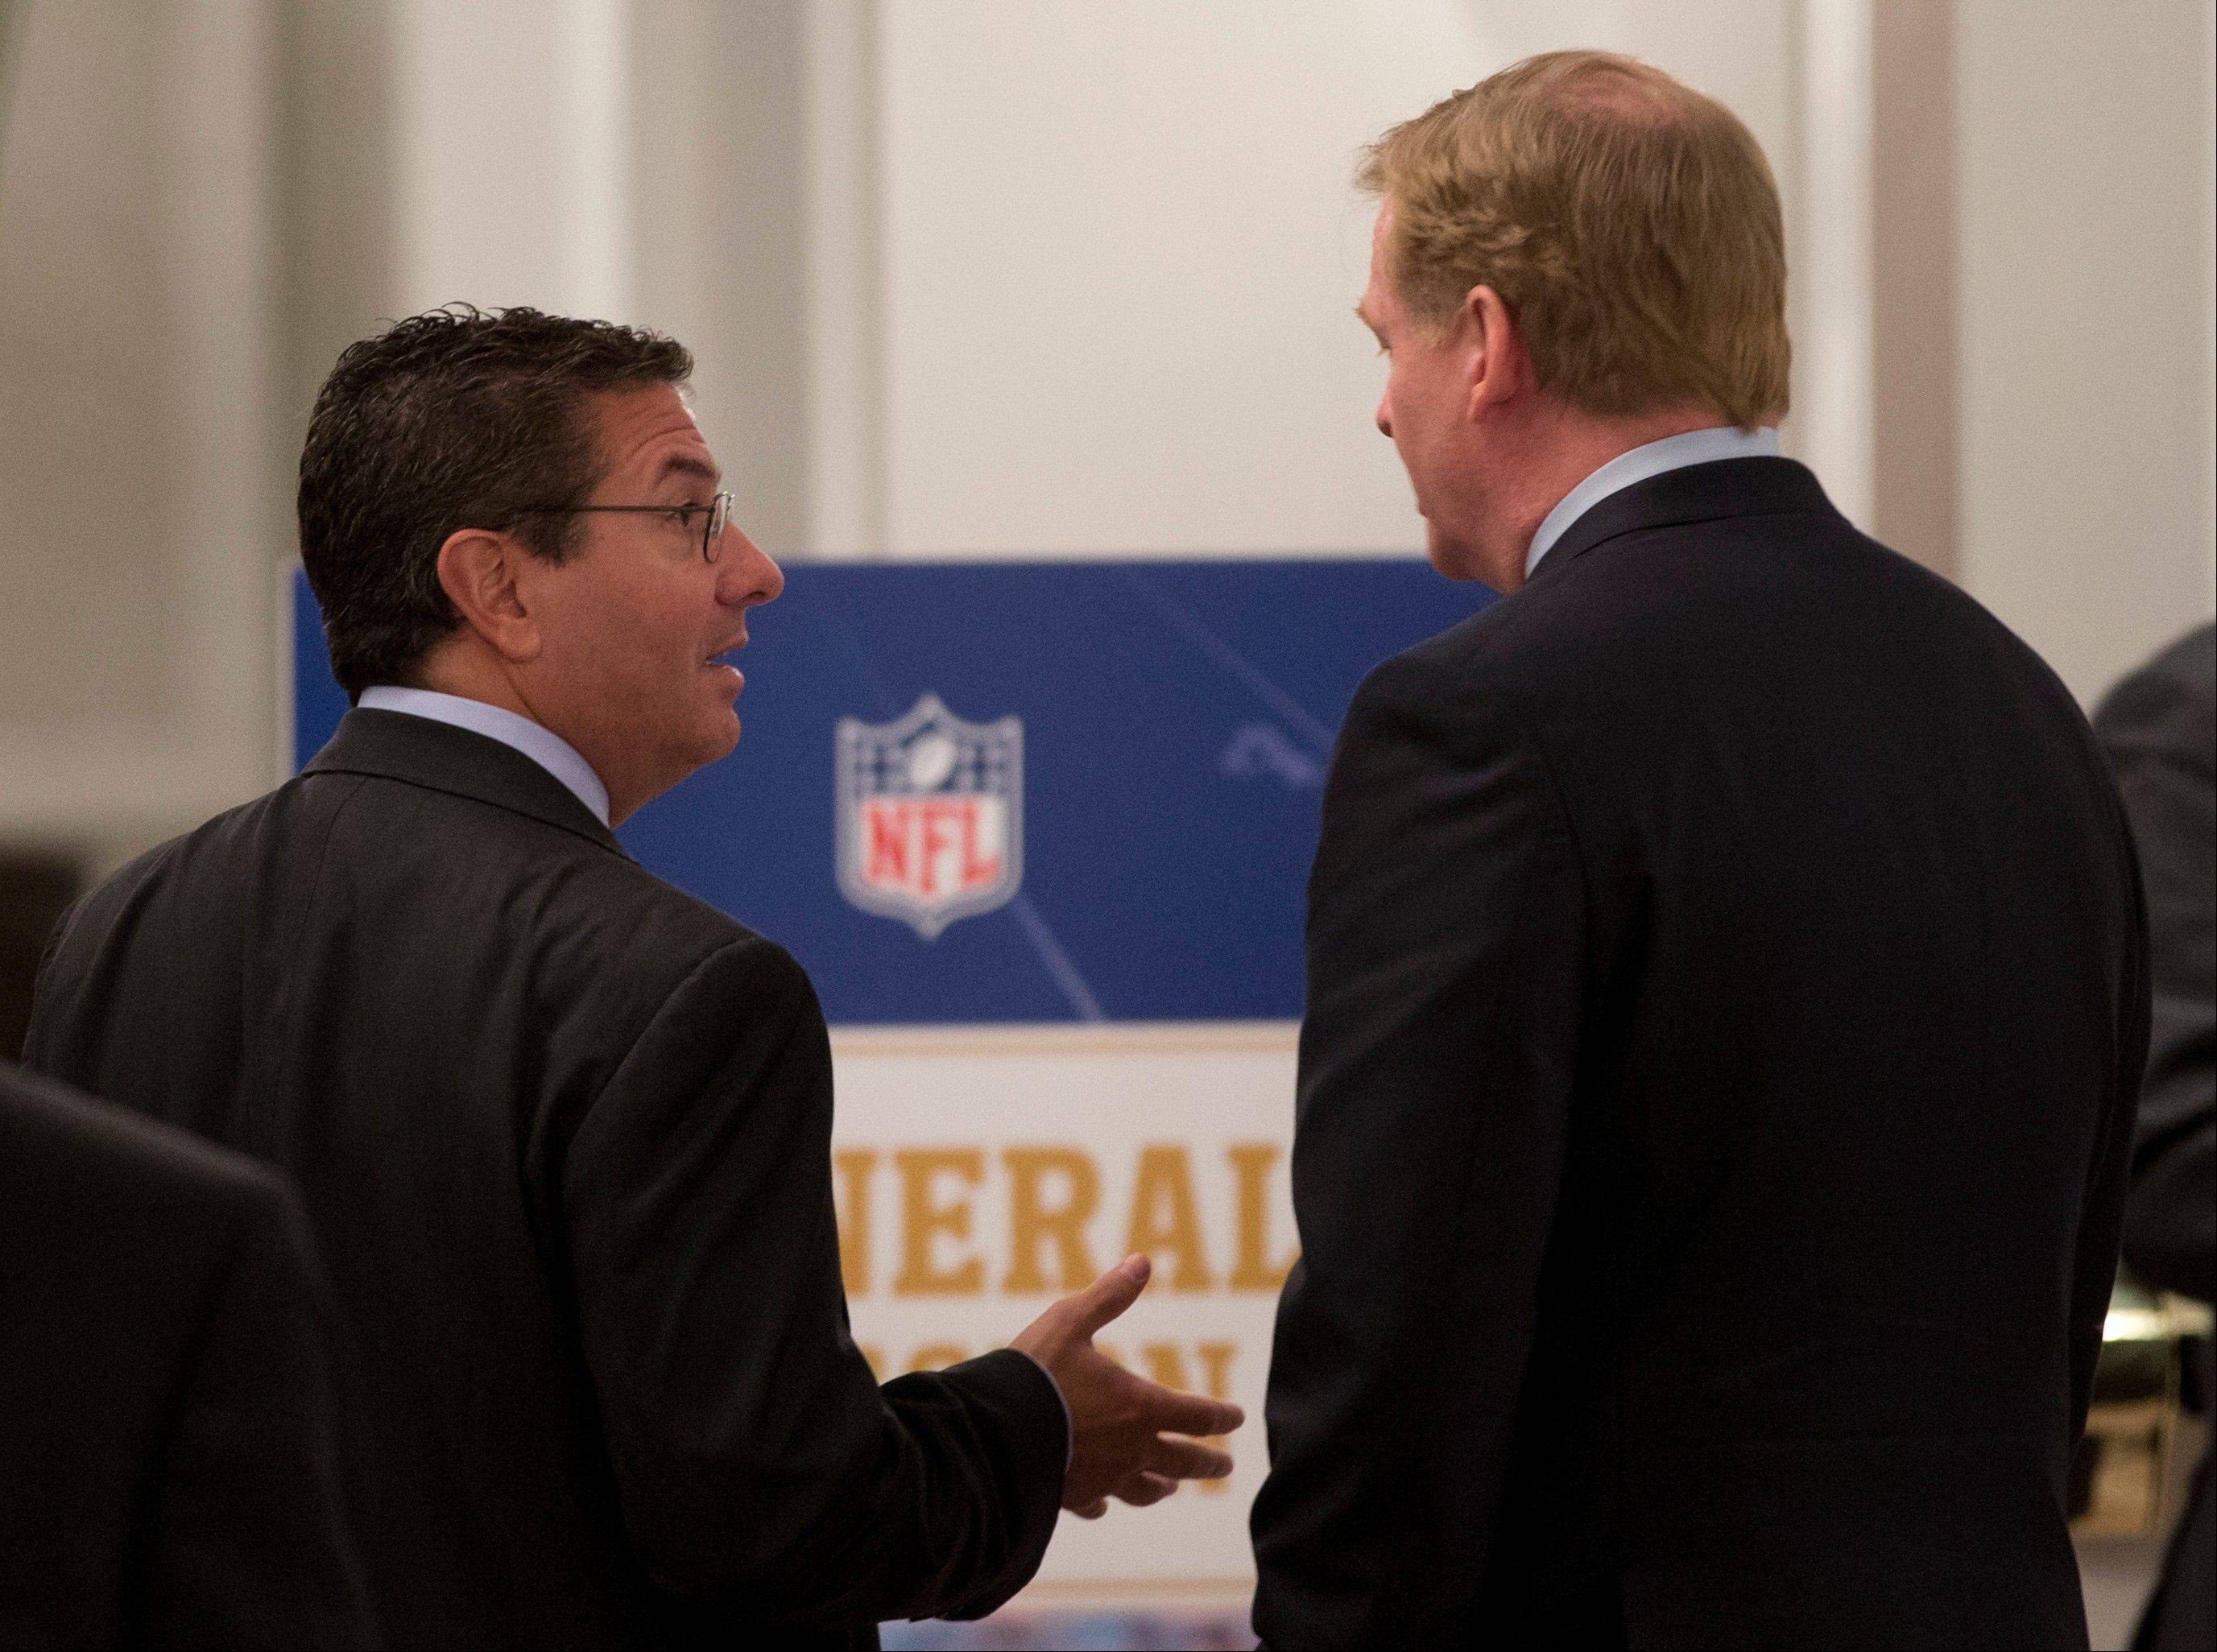 Washington Redskins football team owner Daniel Snyder, left, and NFL Commissioner Roger Goodell, talk Tuesday during a break in the NFL fall meeting in Washington.